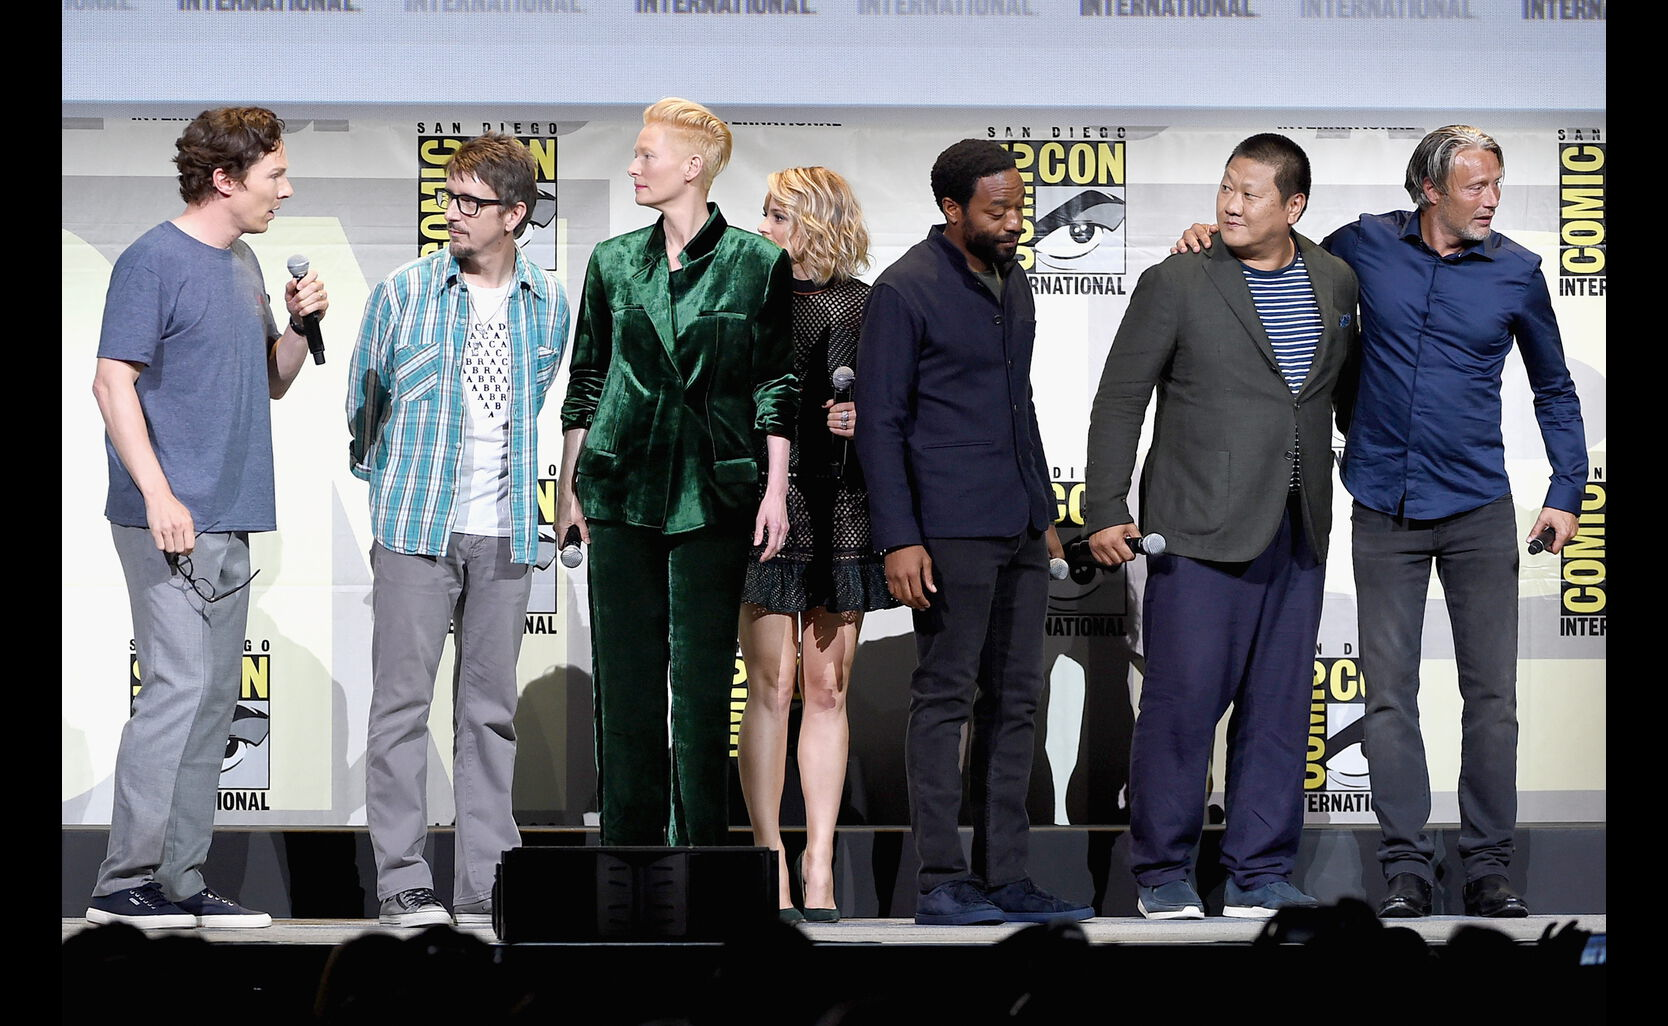 Actor Benedict Cumberbatch, director Scott Derrickson, actors Tilda Swinton, Rachel McAdams and Chiwetel Ejiofor, Mads Mikkelsen and Benedict Wong attend the Marvel Studios presentatio